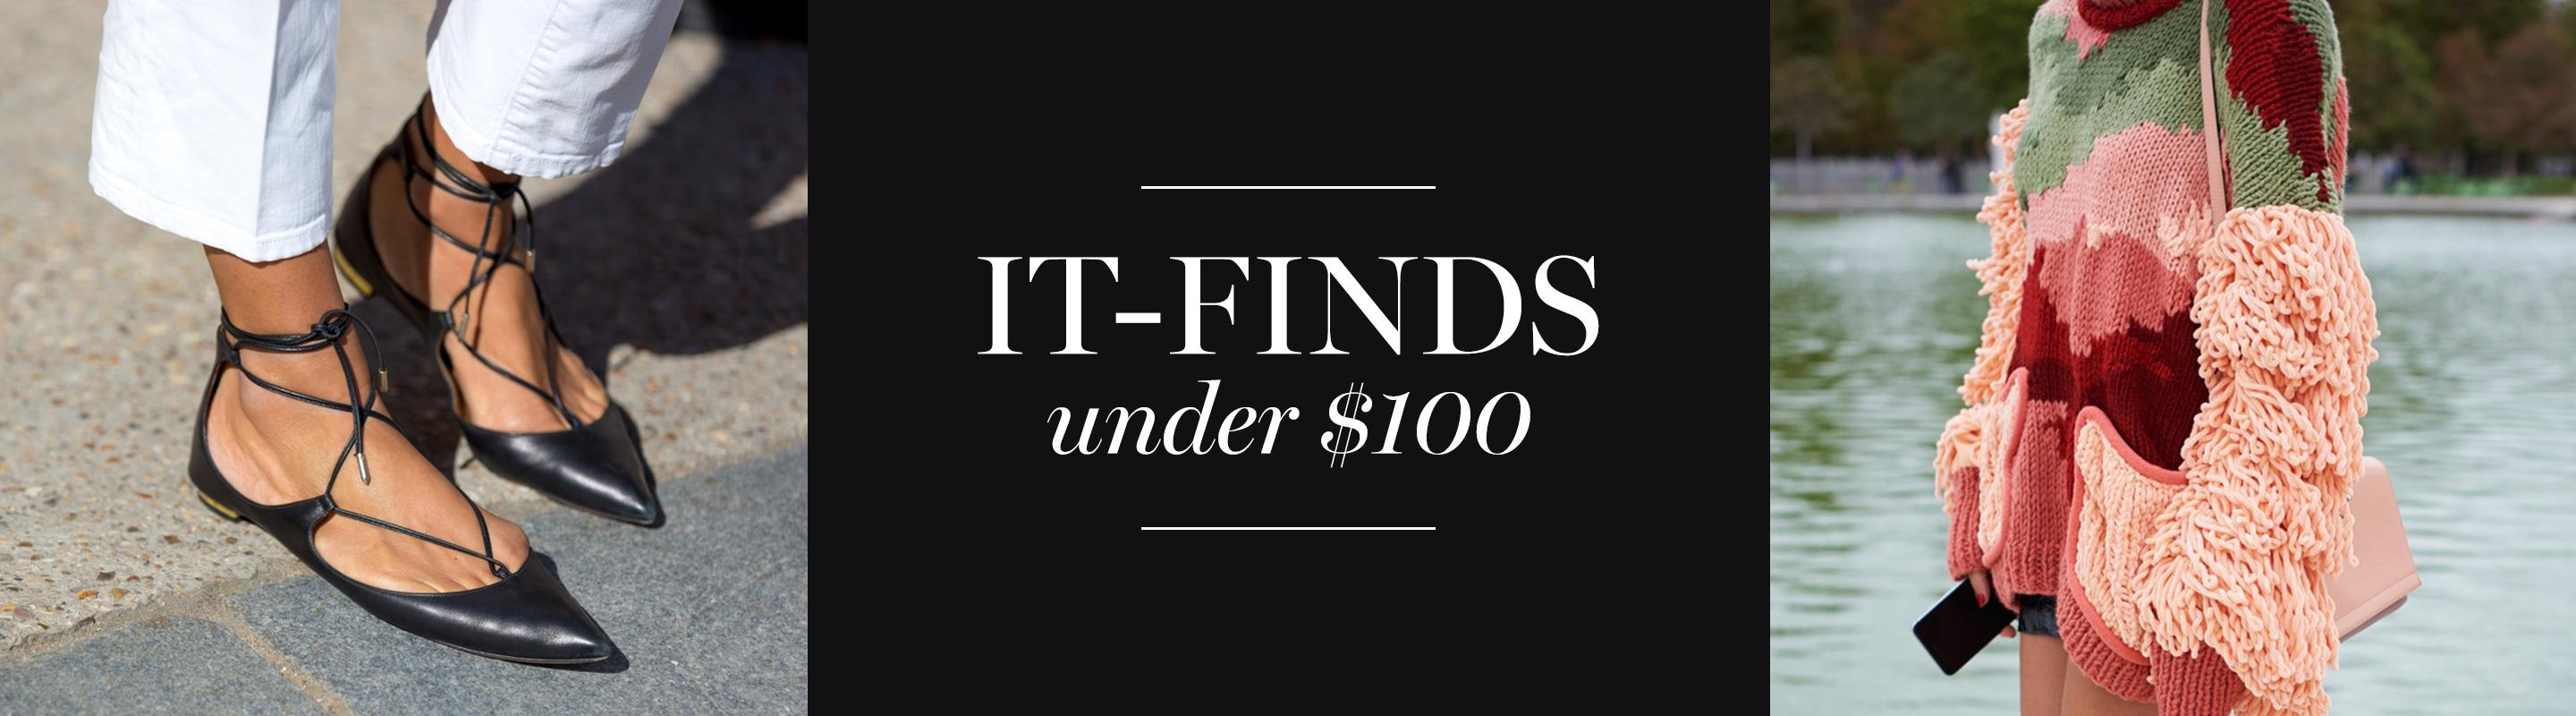 It-Finds Under $100